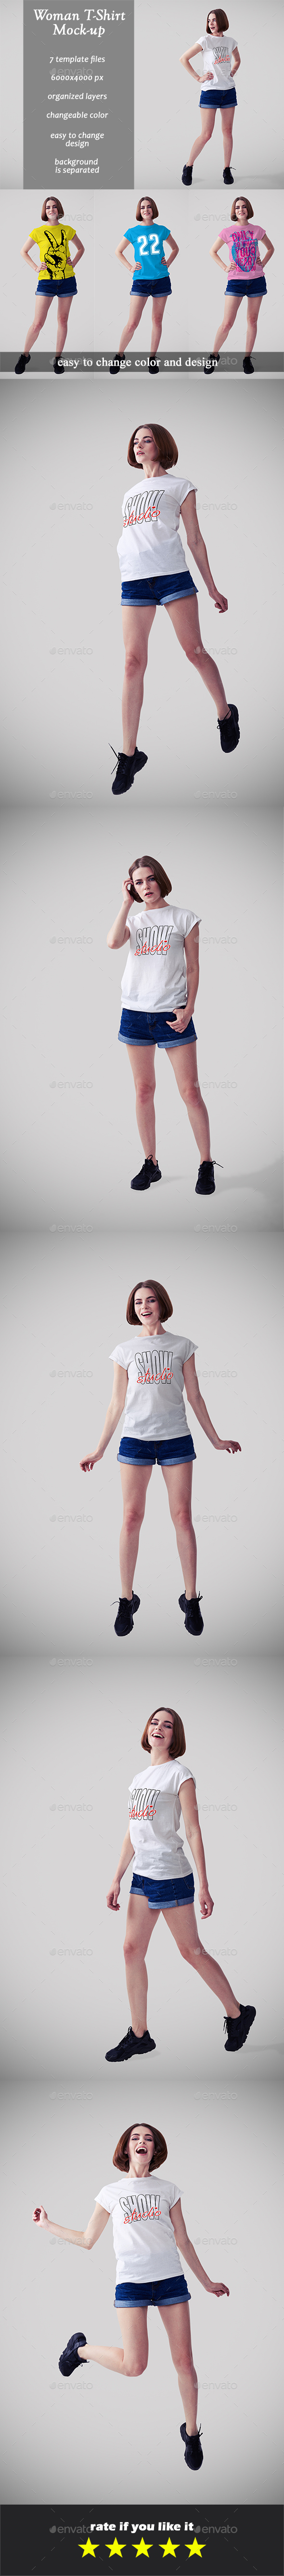 Woman T-shirt Mock-ups vol. 1 - T-shirts Apparel